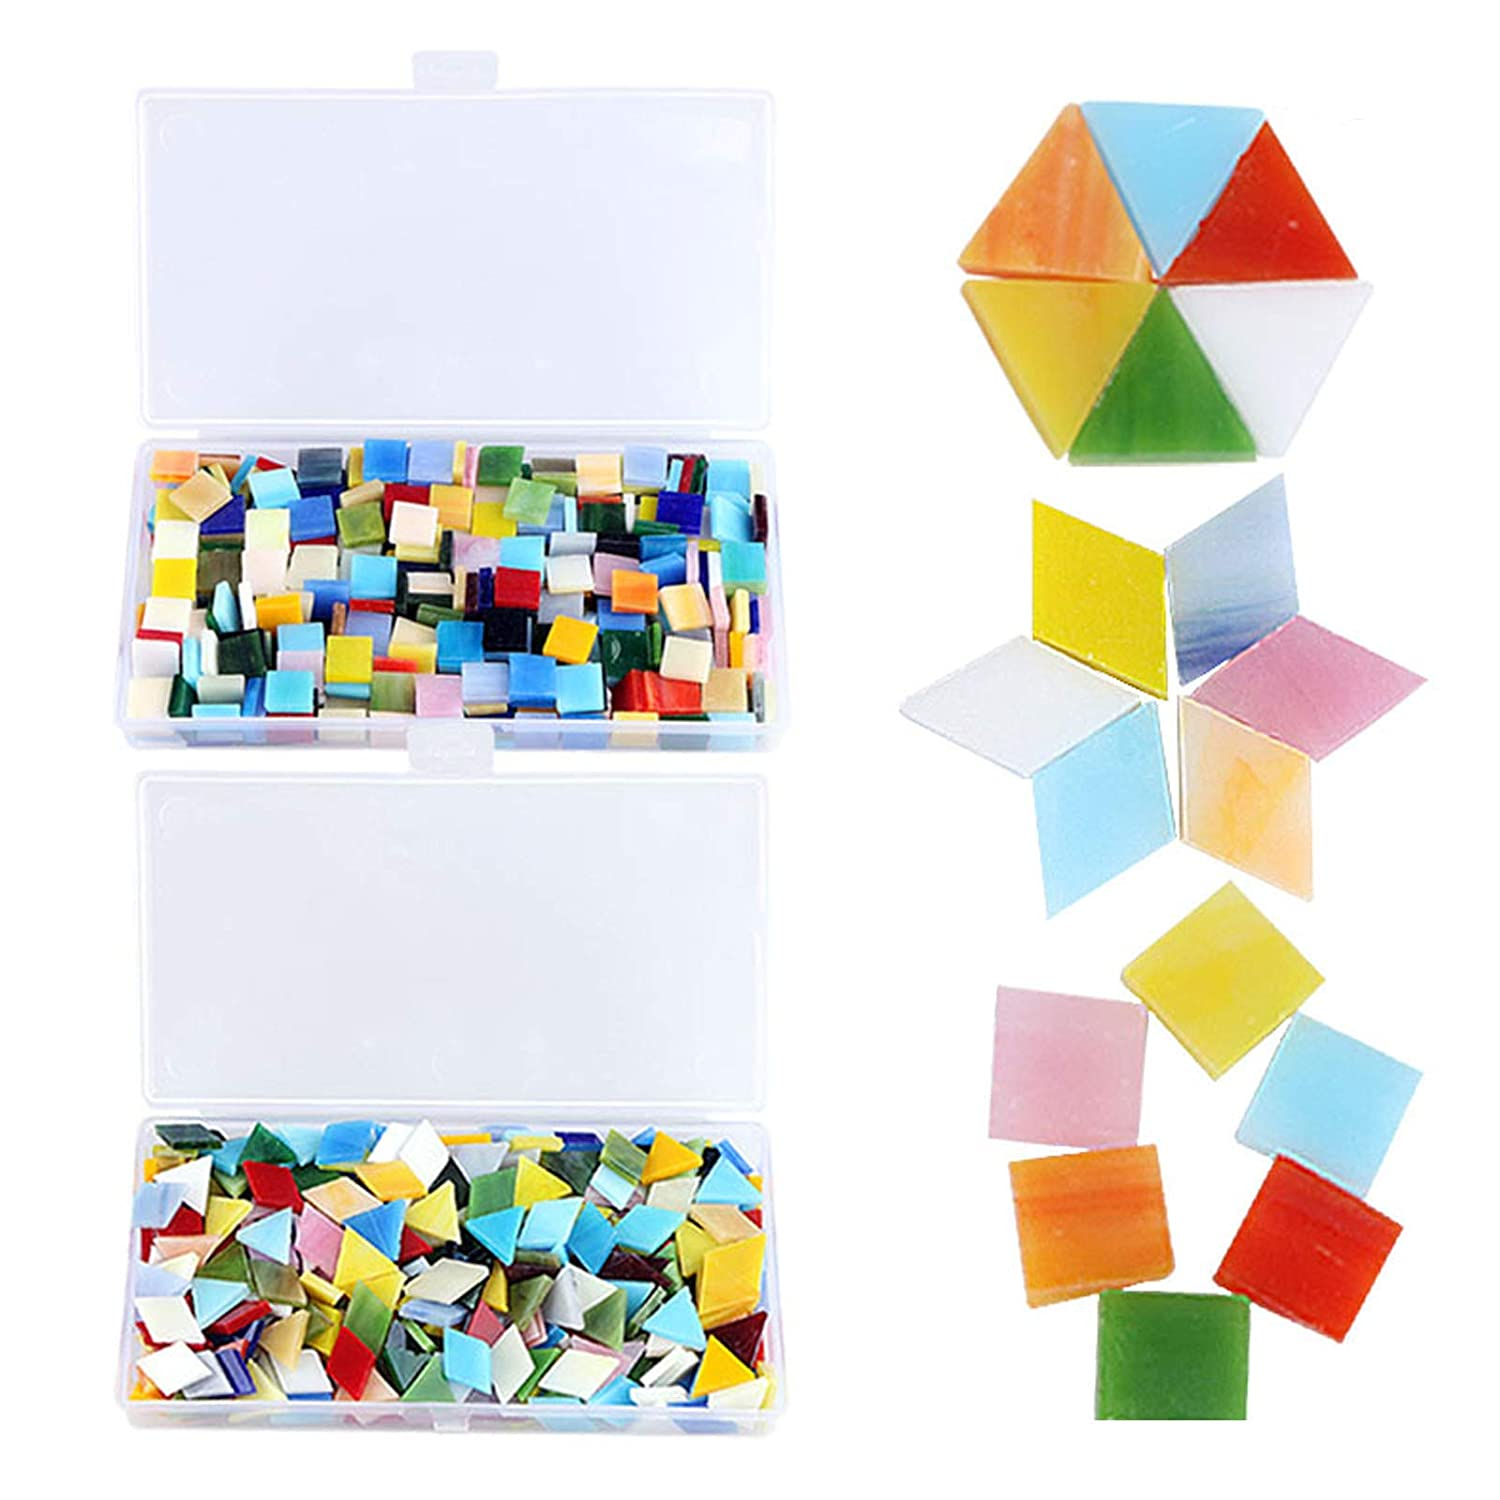 800 Pieces Mixed Color Mosaic Tiles Mosaic Glass Pieces with Organizing Container for Home Decoration or DIY Crafts, Square,Triangle, rhombus, Aunifun 4336864697